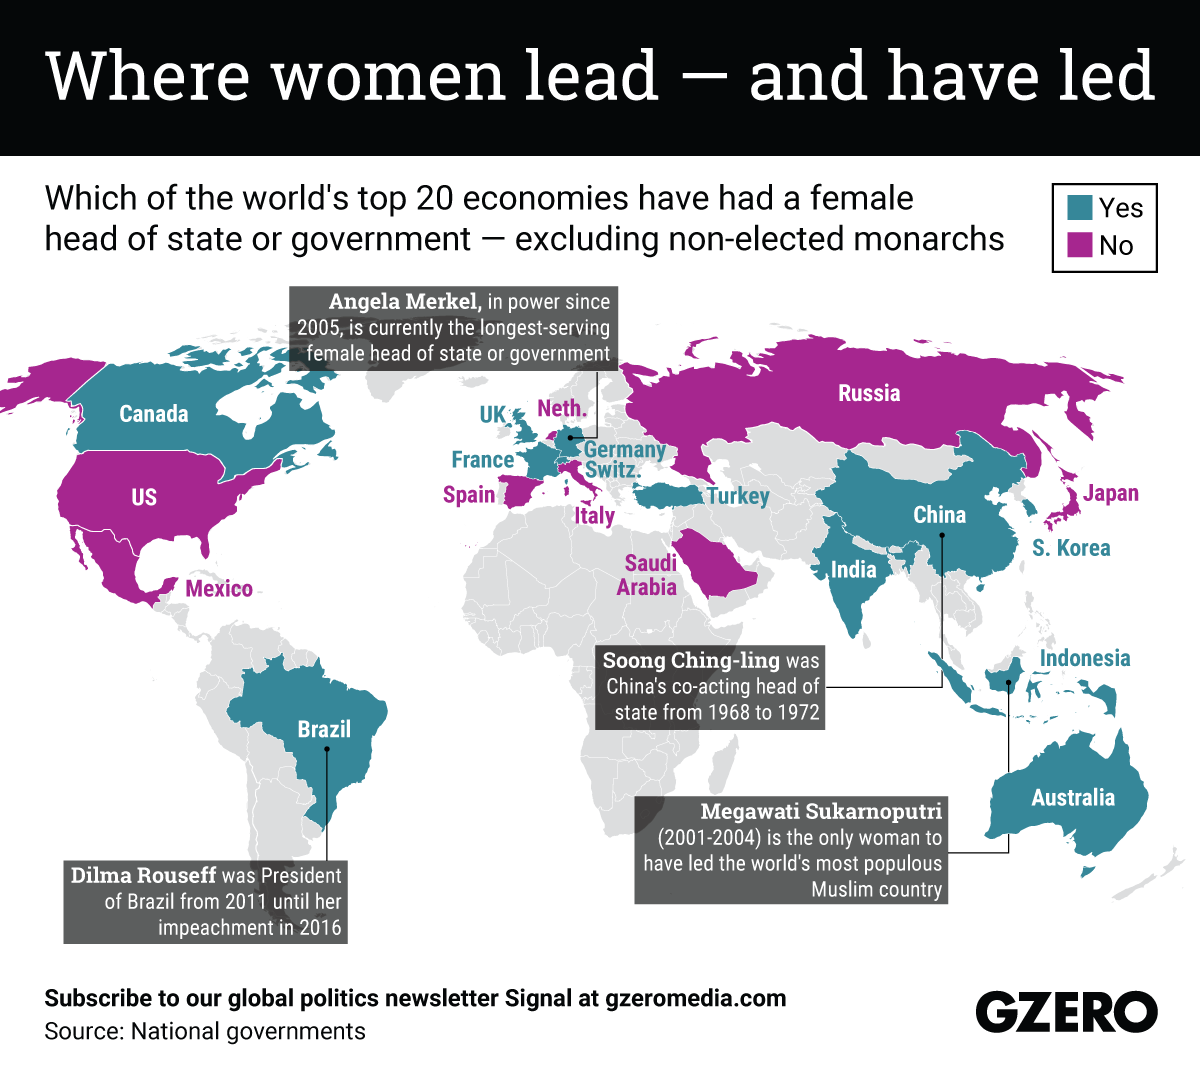 The Graphic Truth: Where women lead — and have led